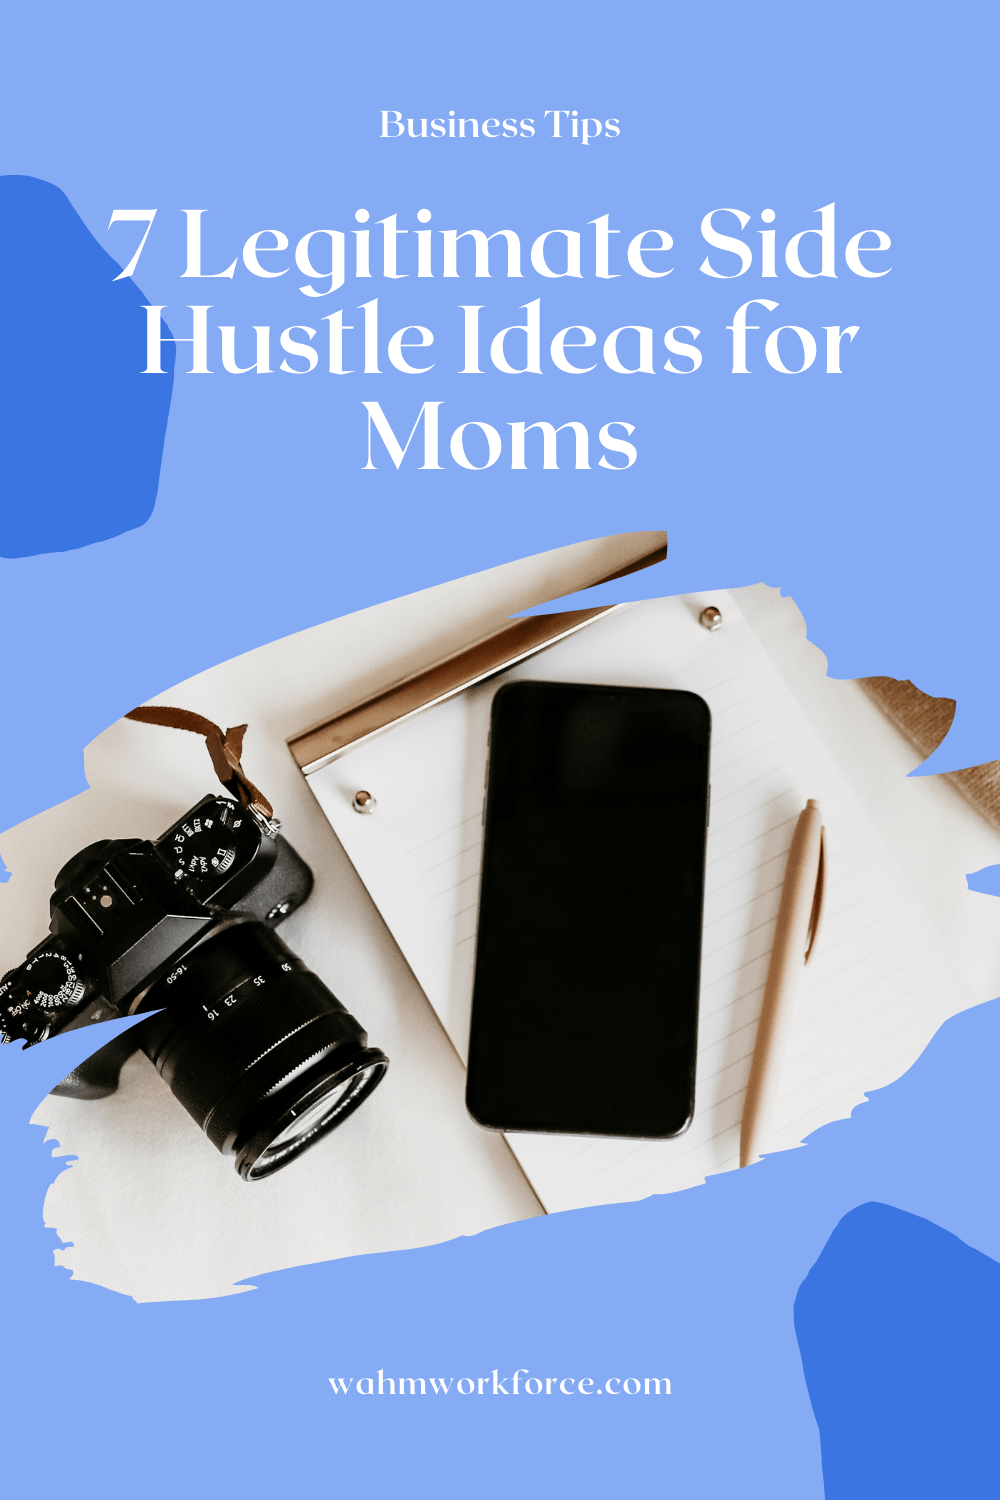 7 legitimate side hustle ideas for moms